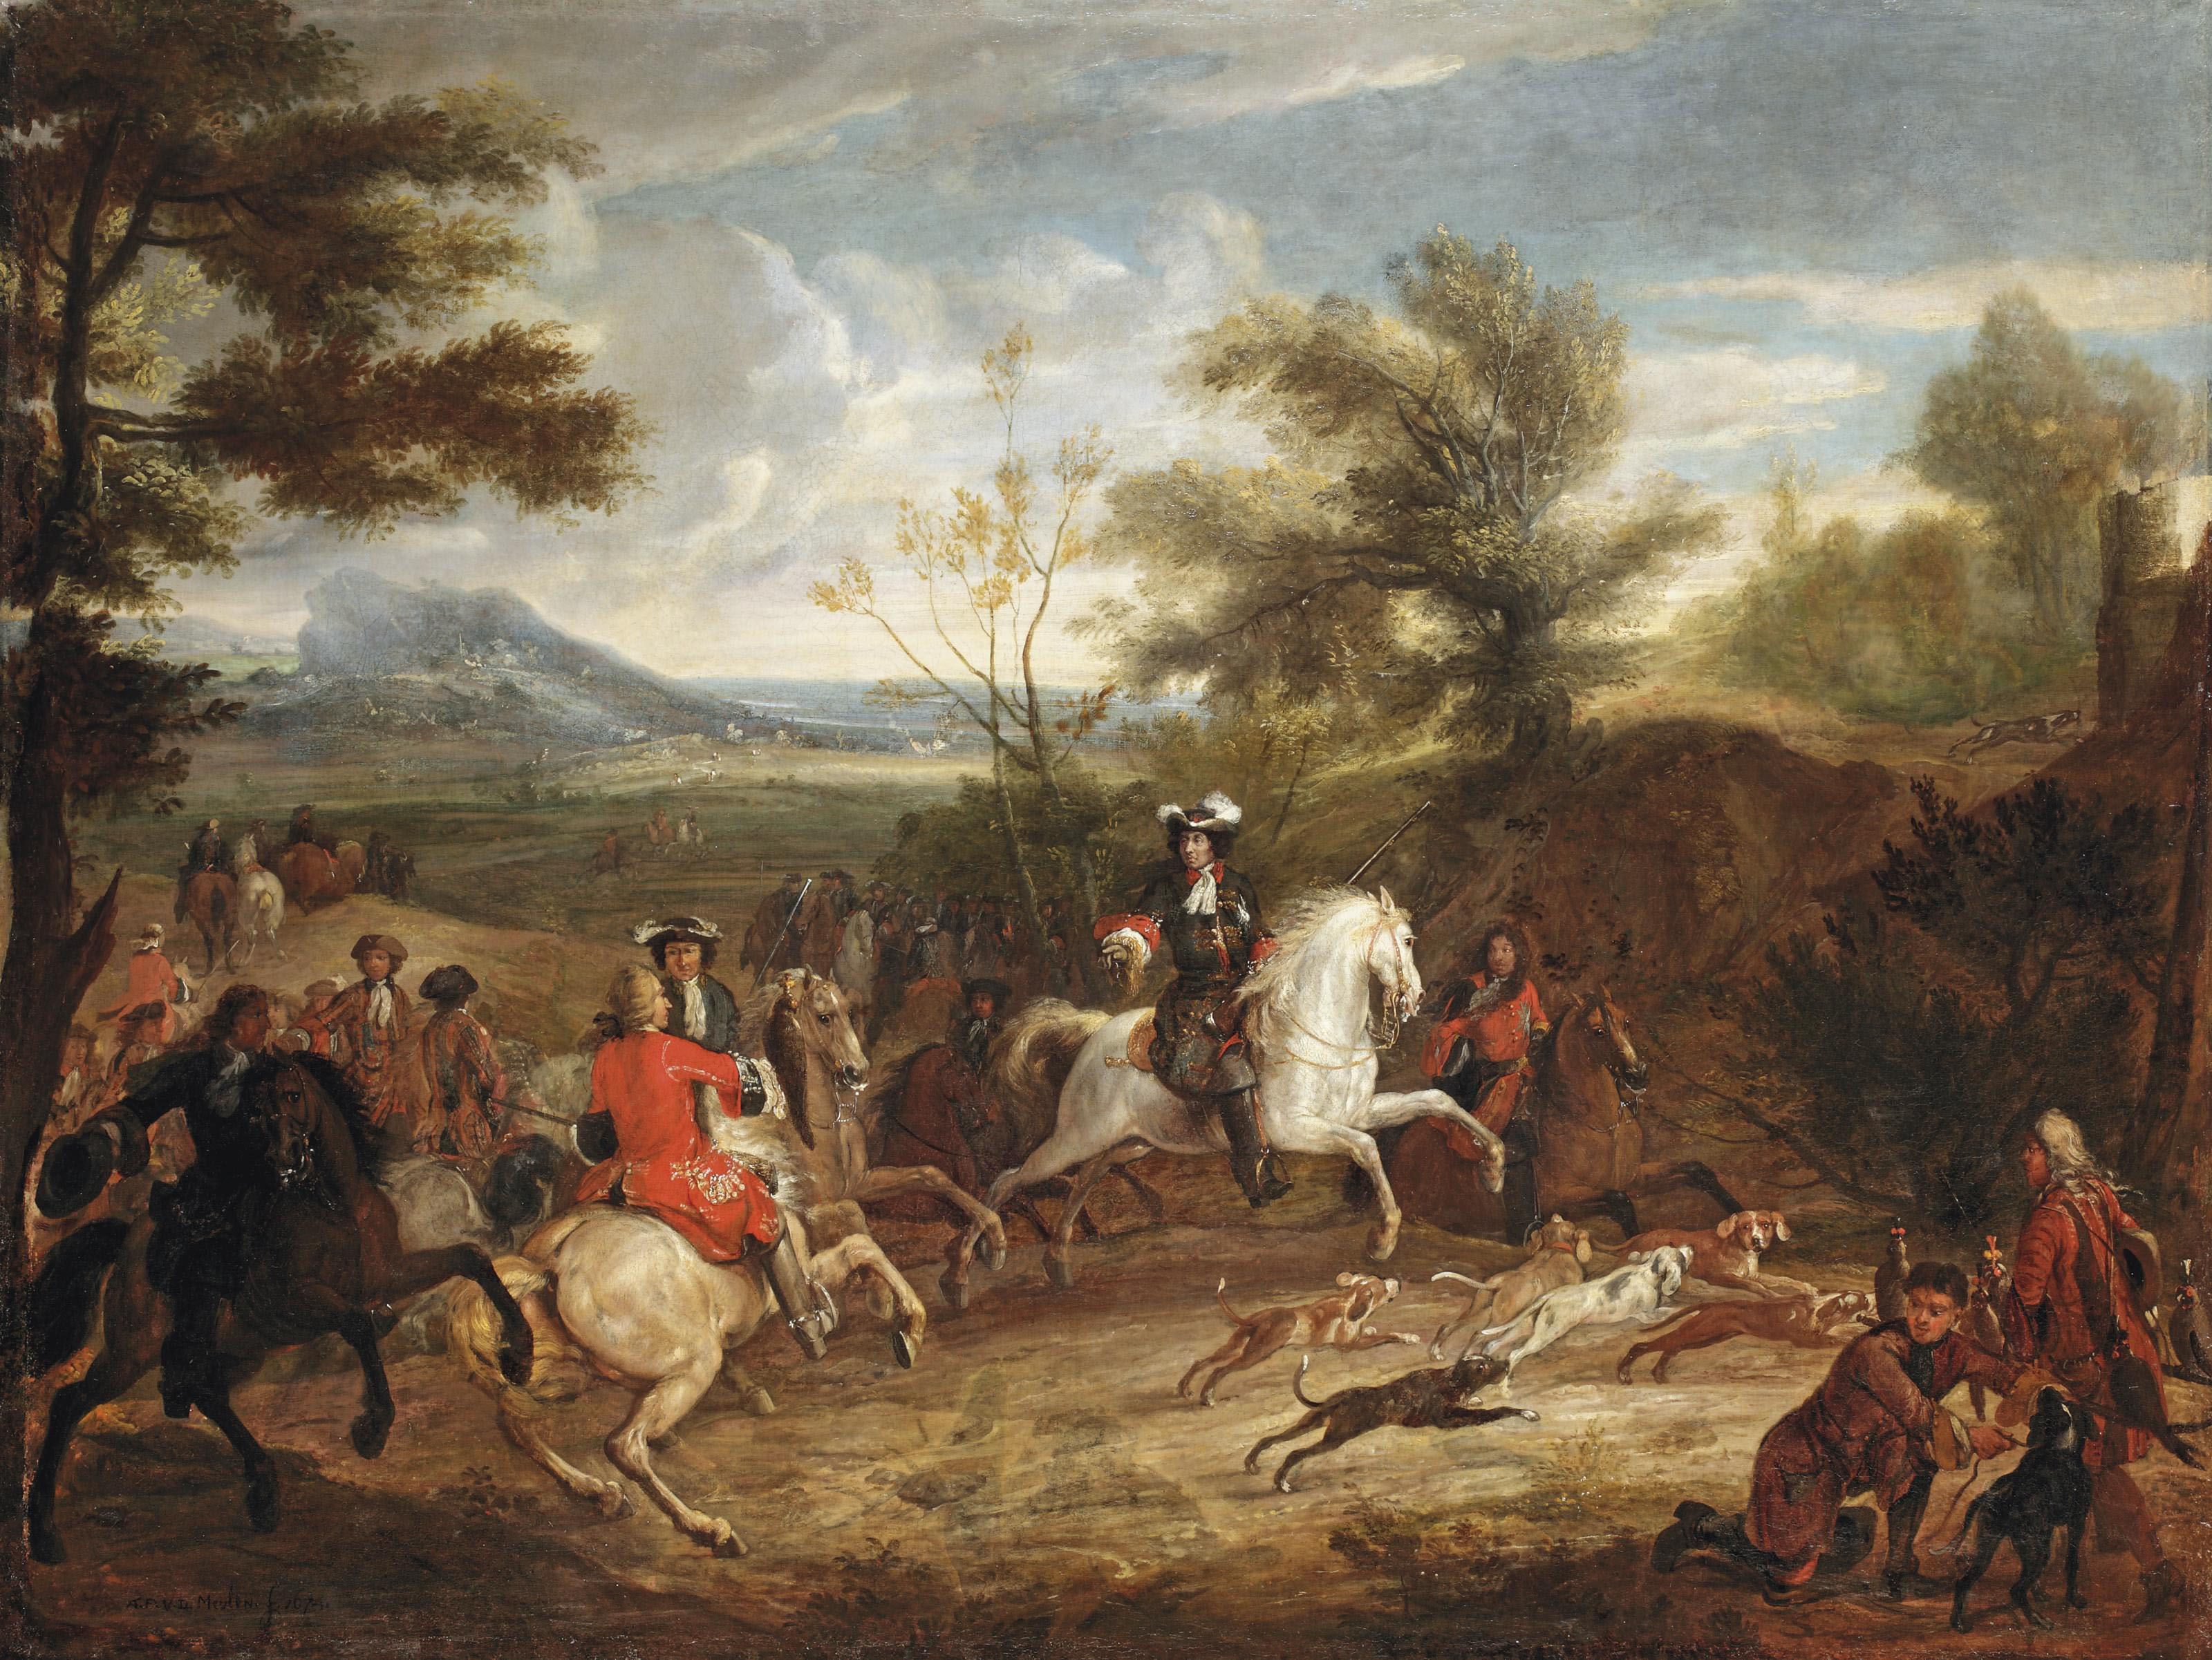 An elegant hunting party and their dogs following a trail